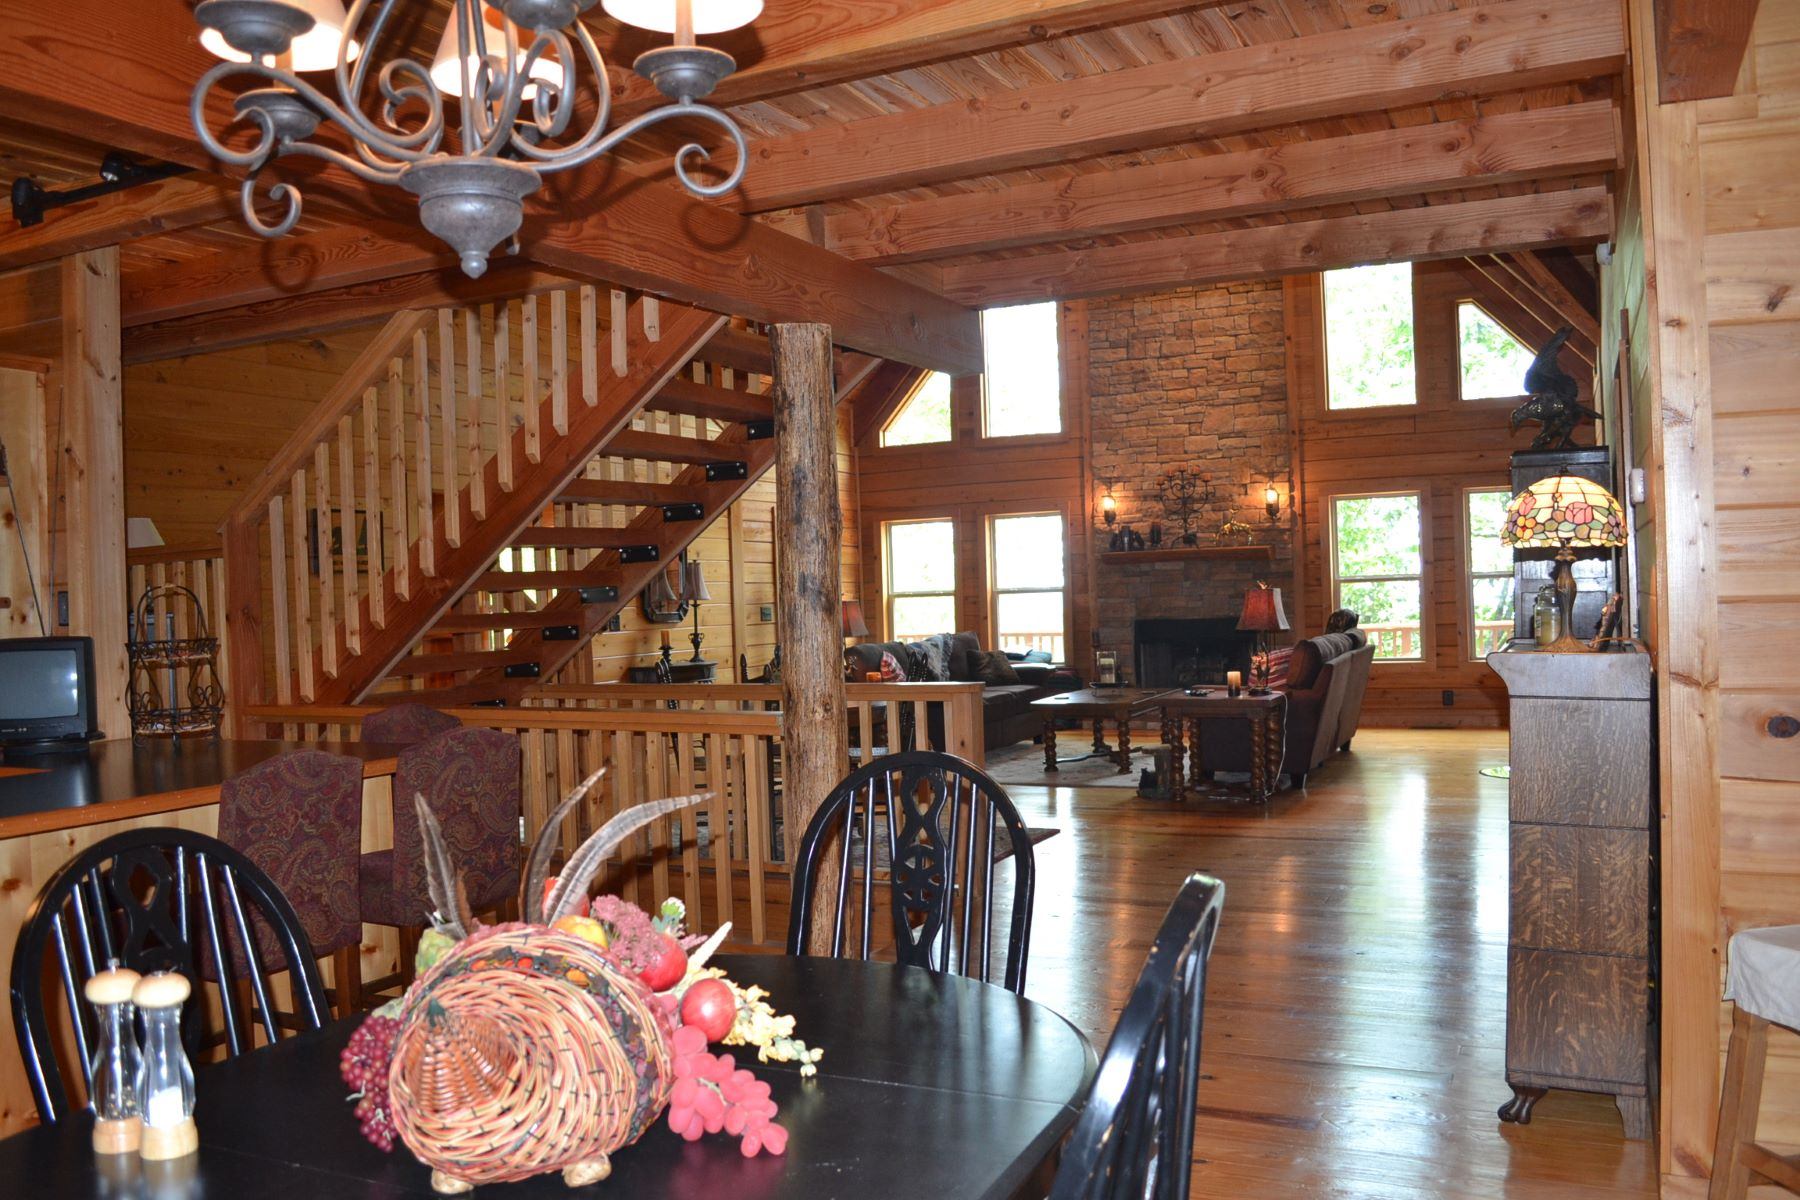 Частный односемейный дом для того Продажа на Beautiful Log Home Showcasing Privacy and Mountain Vistas 1180 Little Hendricks Mountain Road Jasper, Джорджия, 30143 Соединенные Штаты